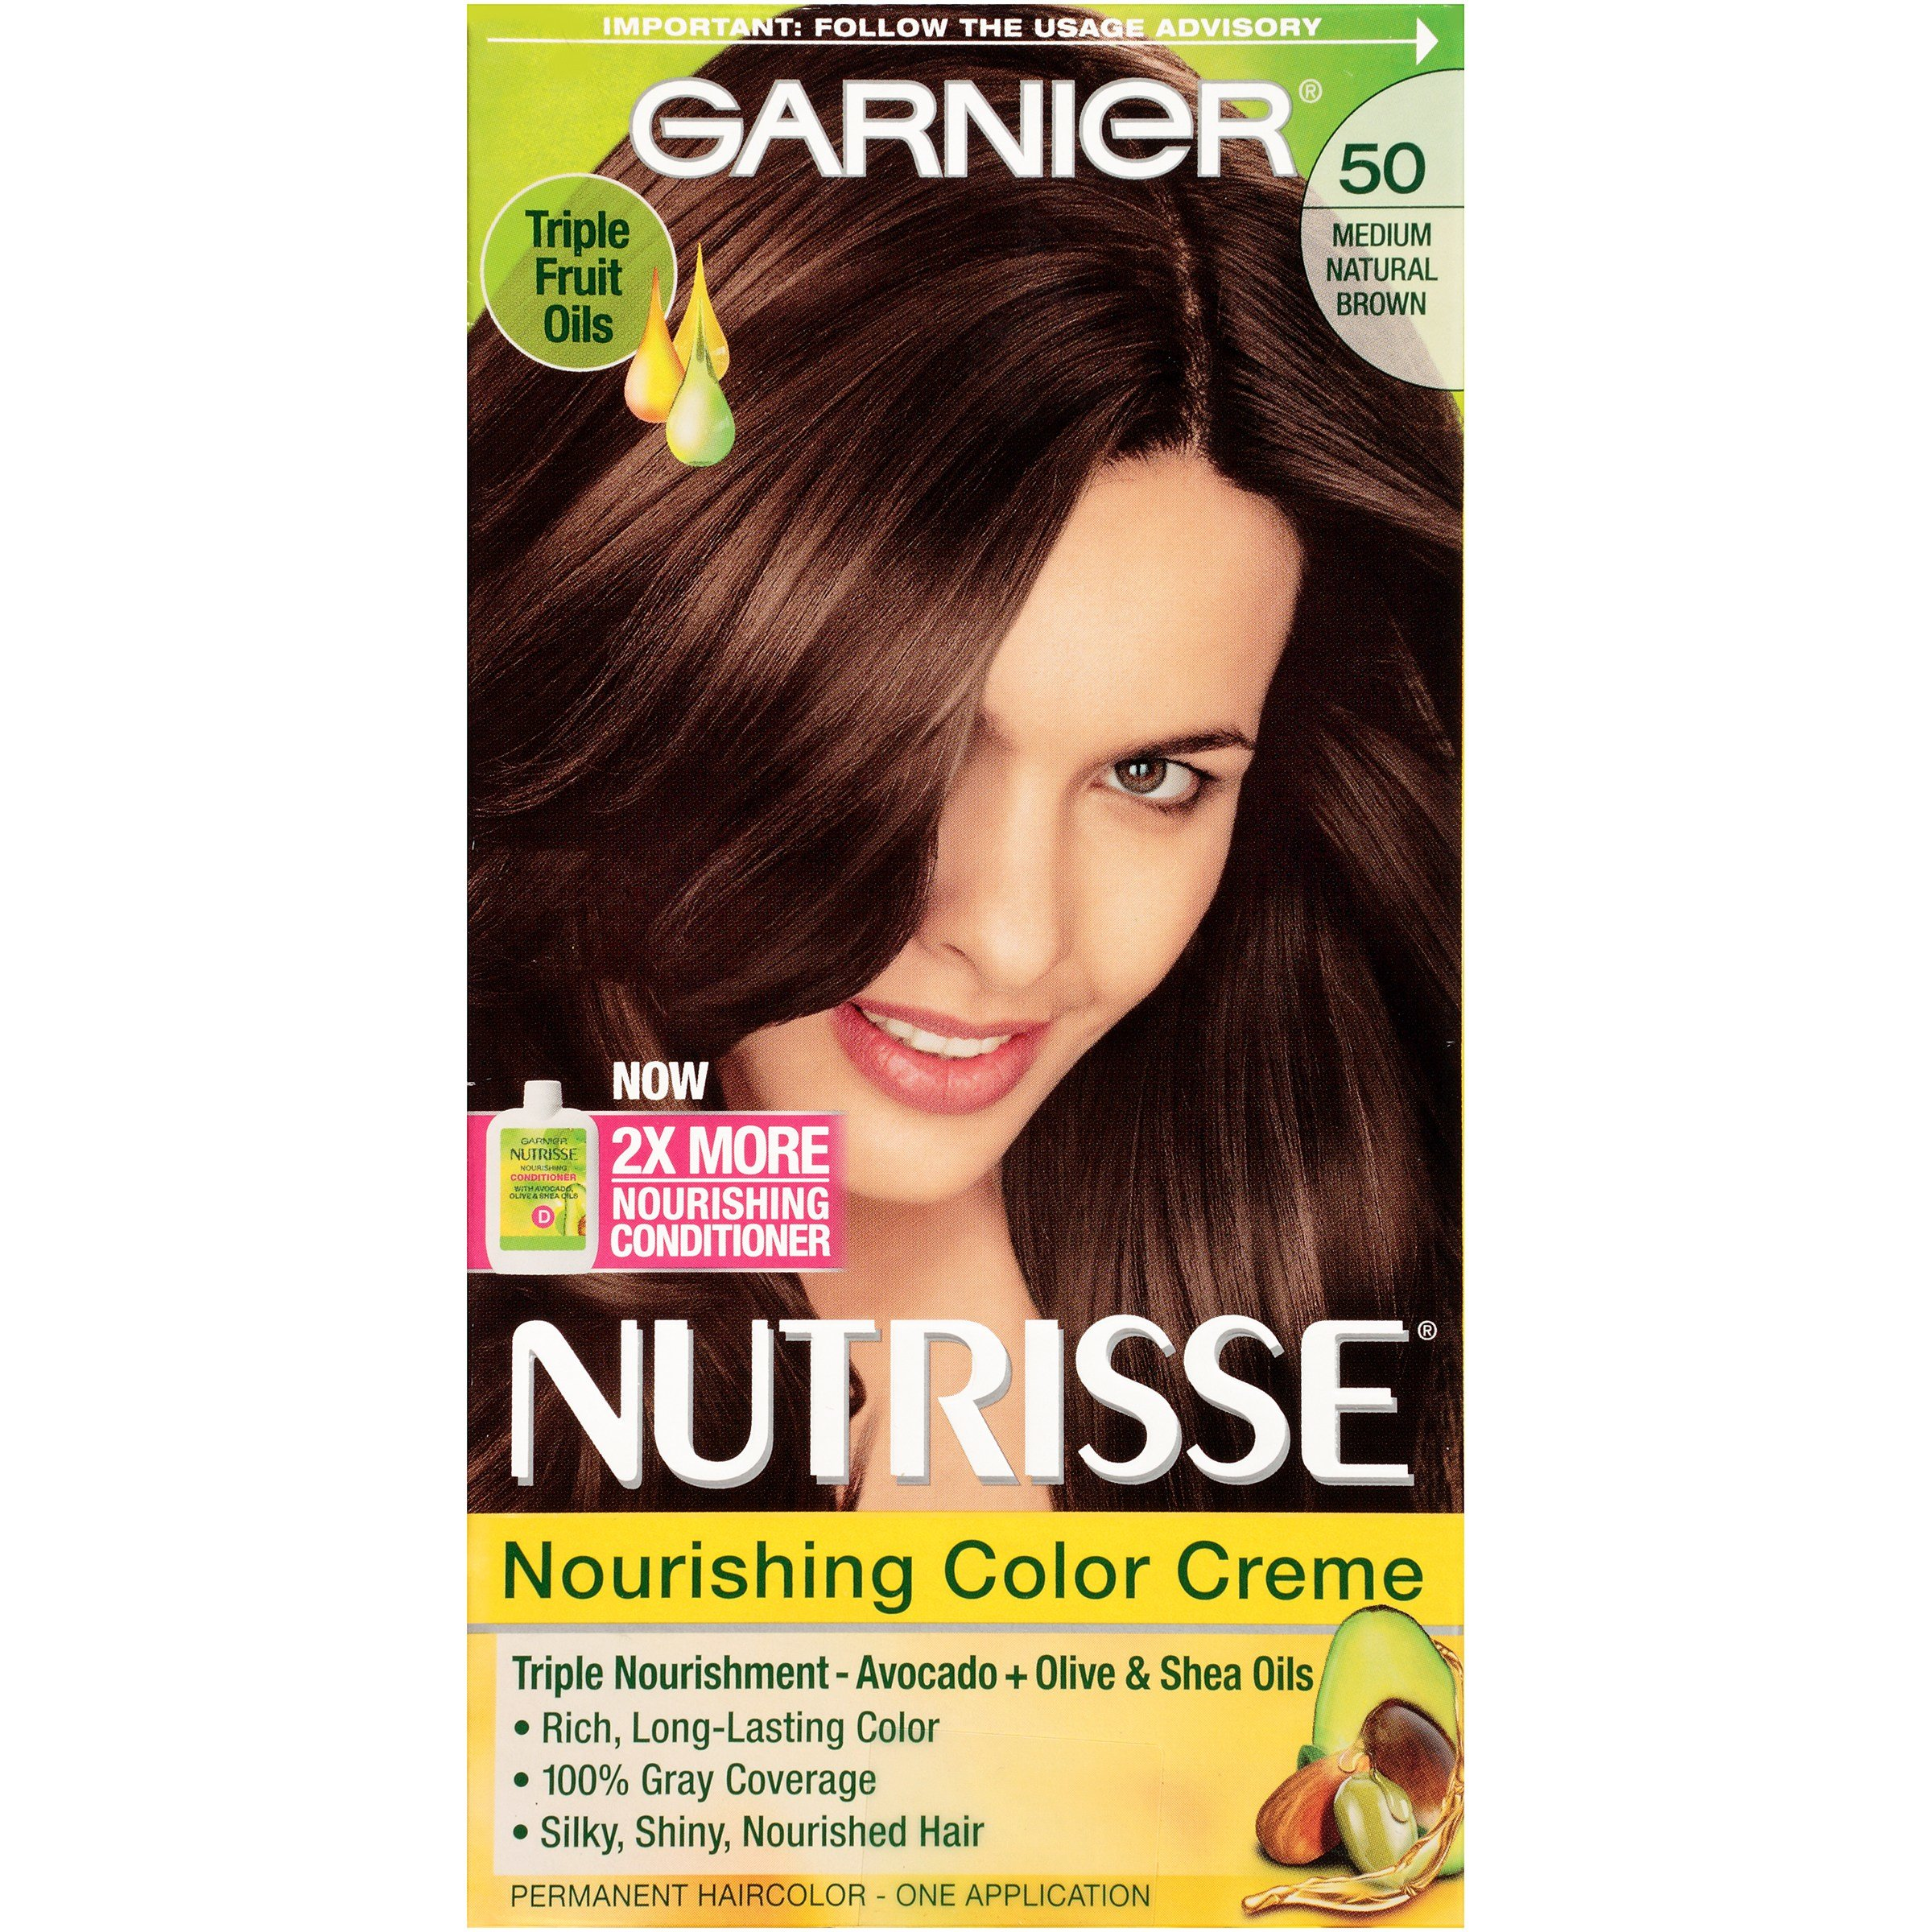 The Best Nutrisse® 50 Medium Natural Brown Truffle Nourishing Color Creme 1 Kt Box Beauty Hair Care Pictures